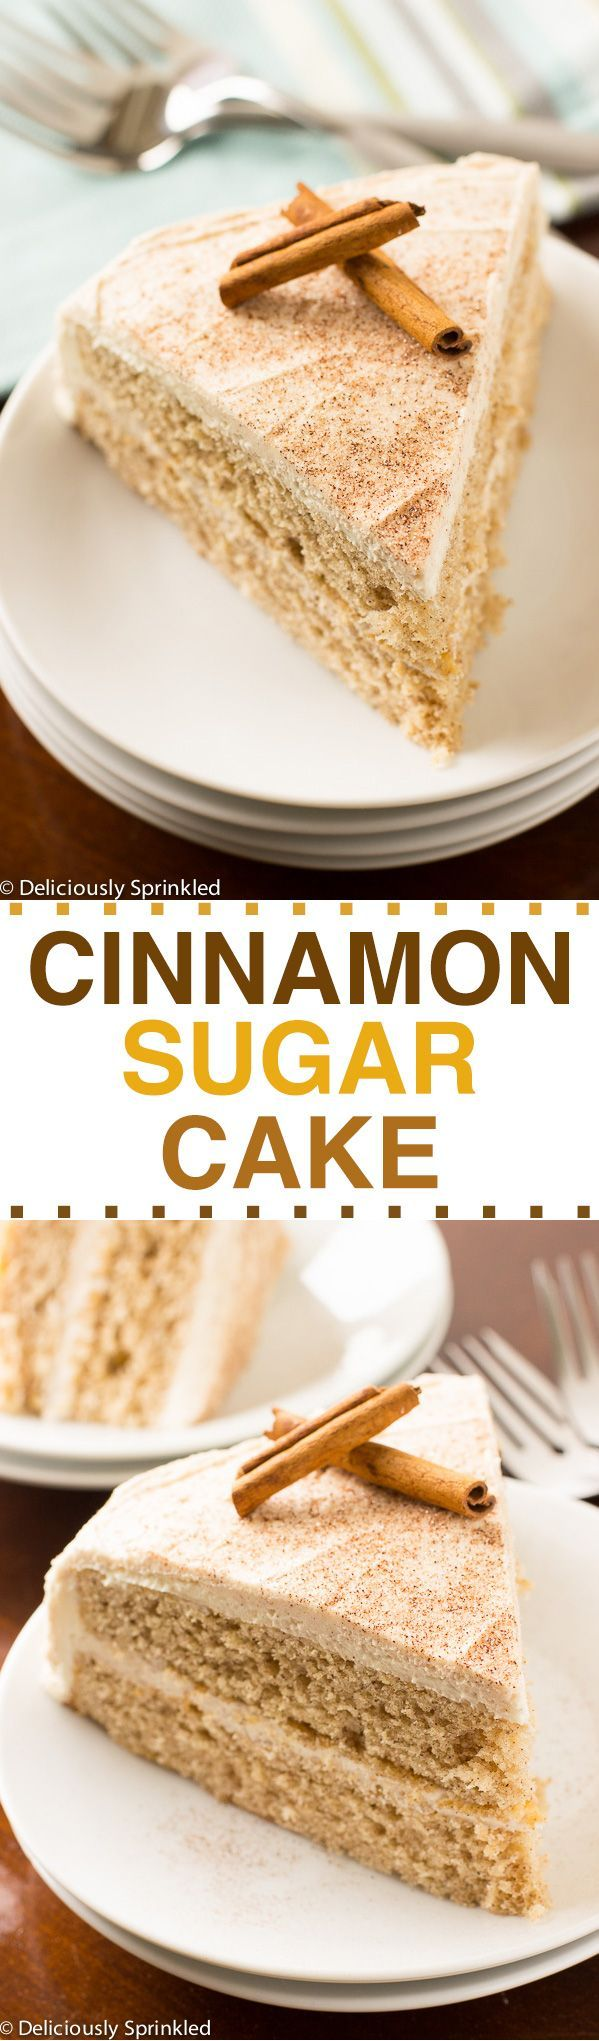 The+BEST+Cinnamon-Sugar+Cake+Recipe